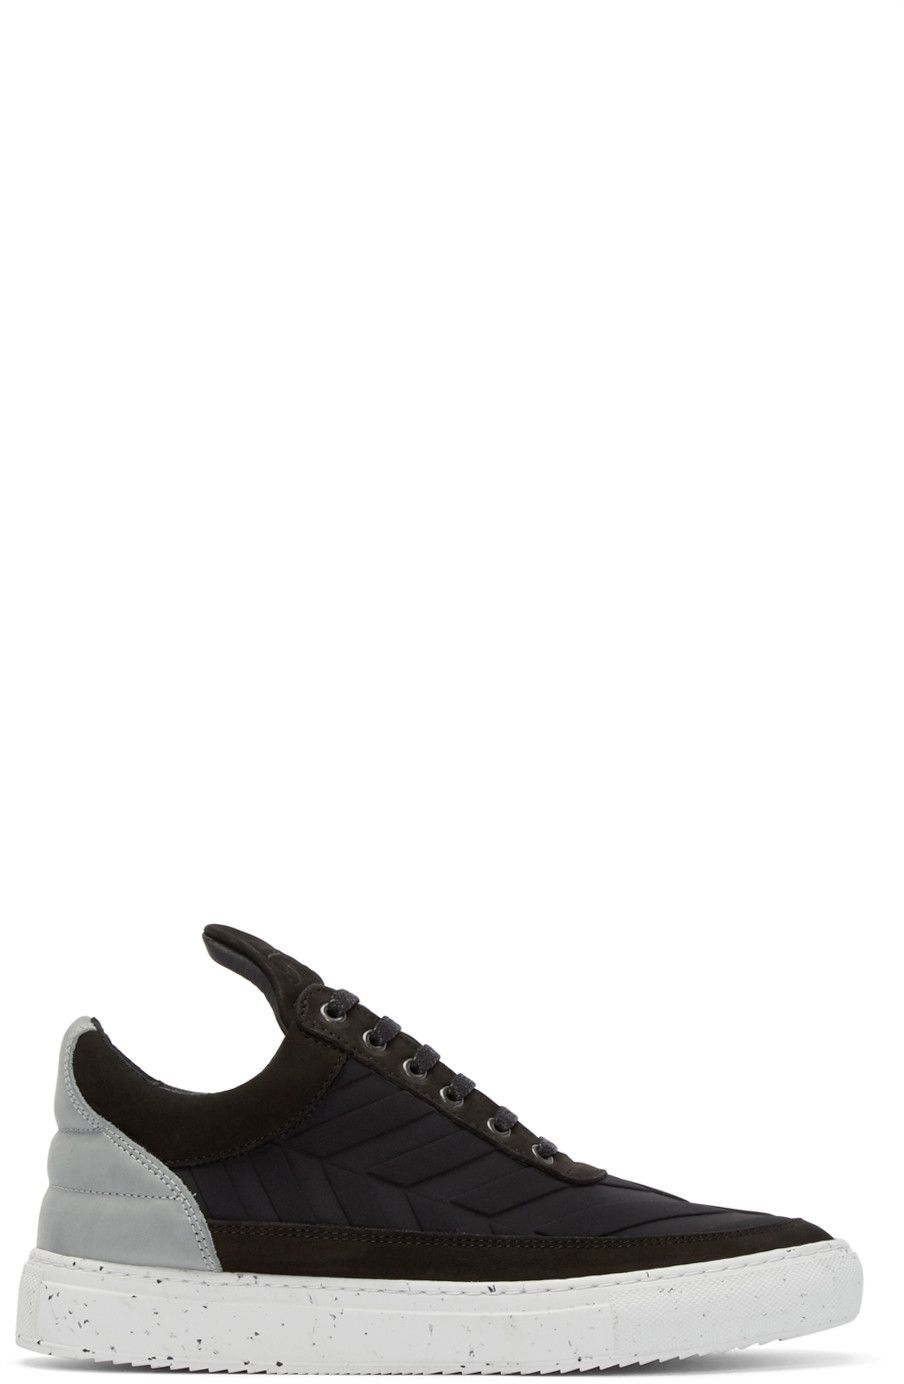 newest bc42d 3a4d5 Filling Pieces - Black Neoprene Speckle Sneakers